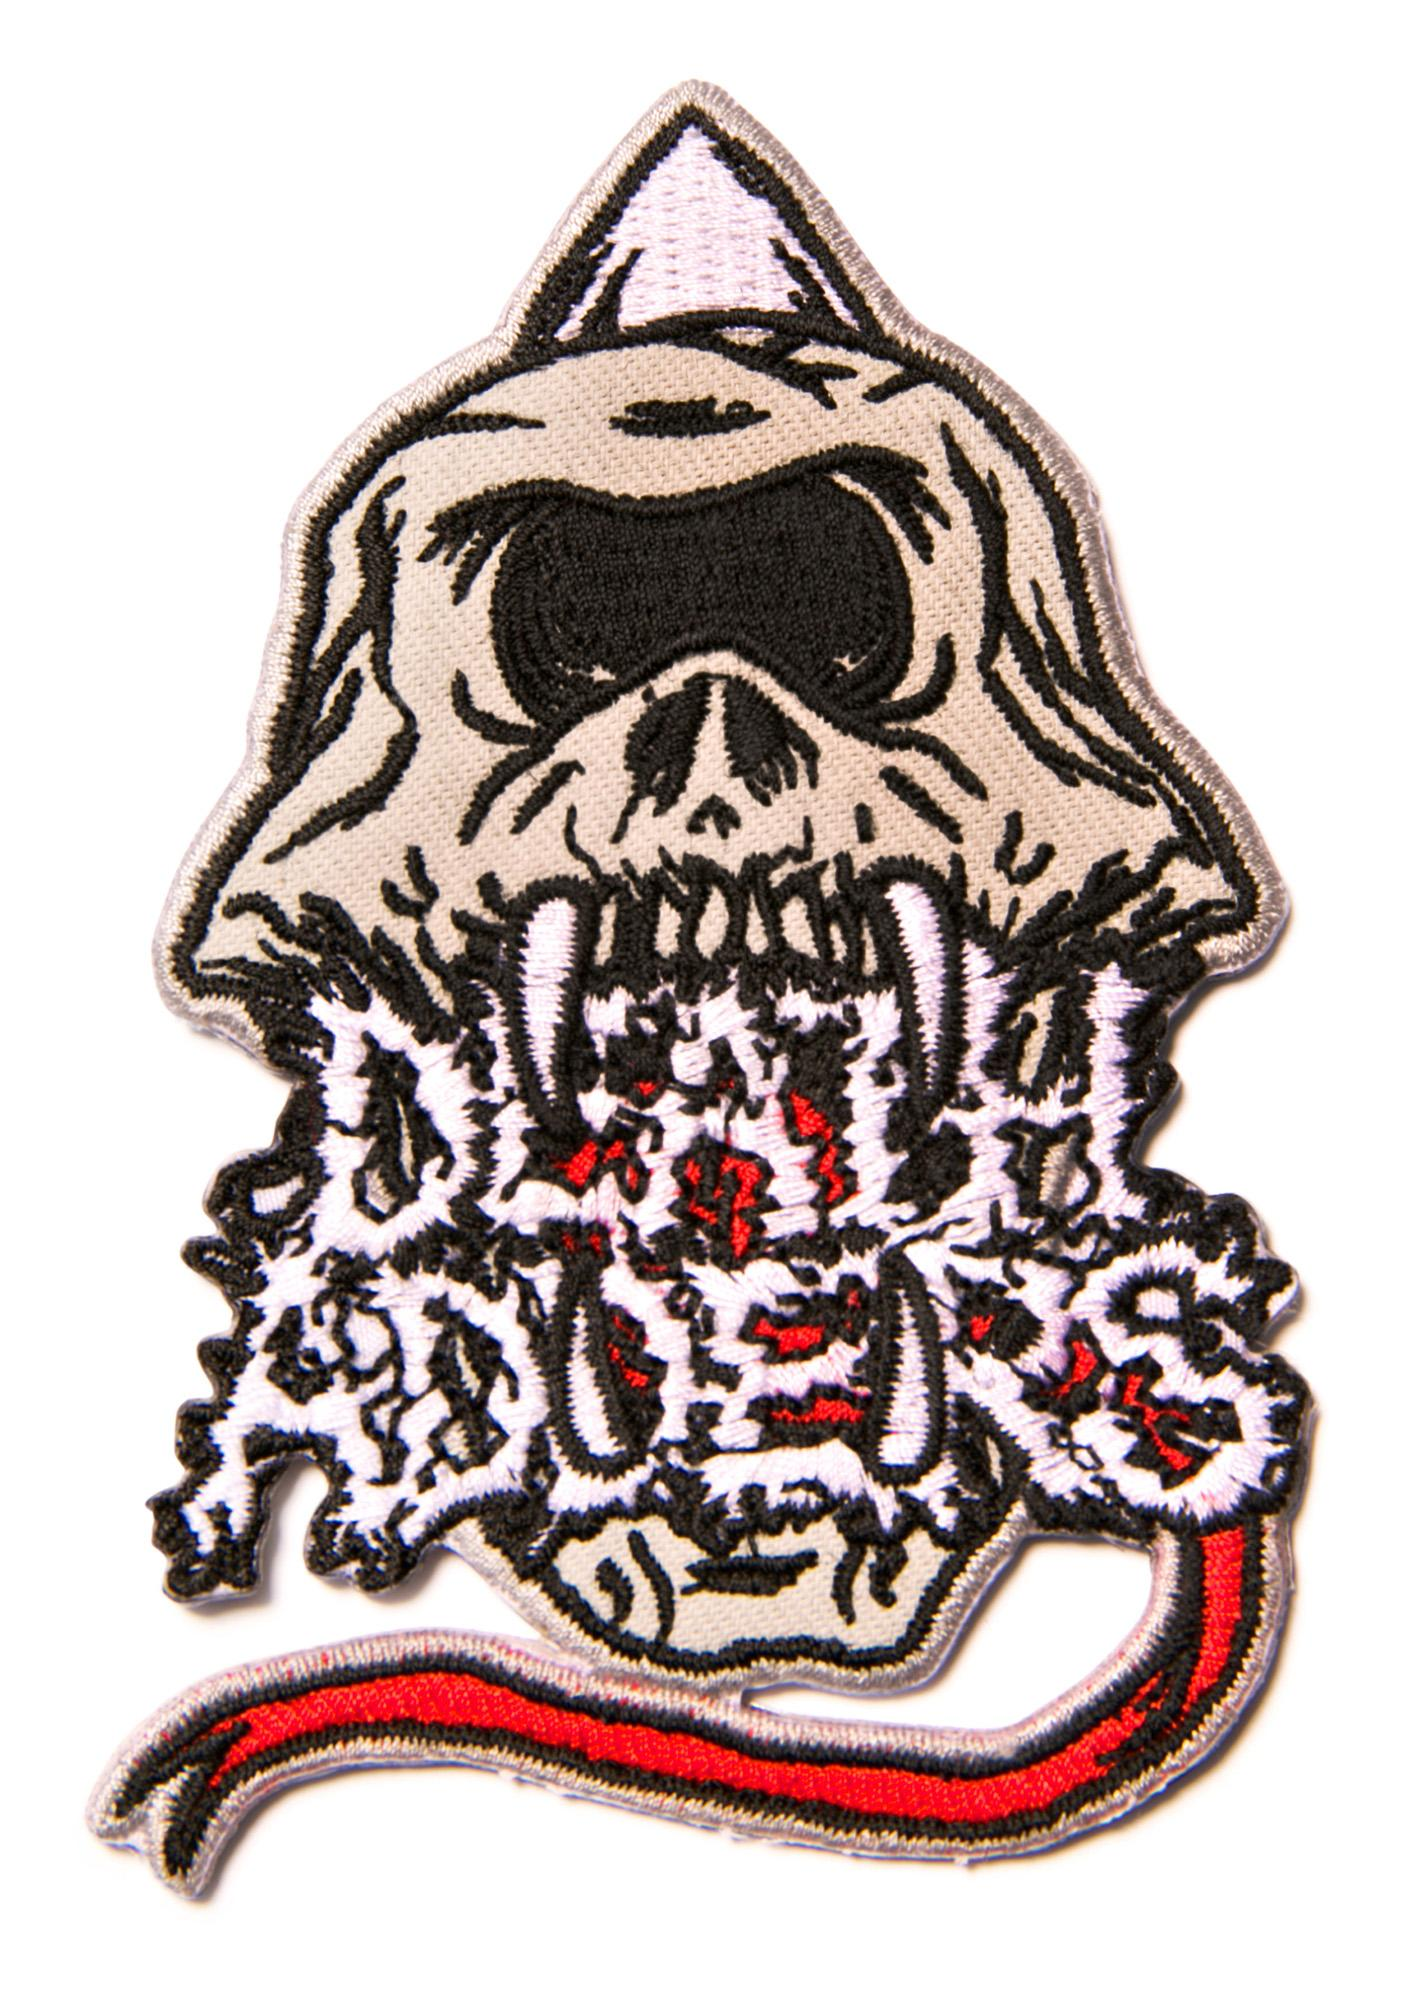 Cyco Serpent Patch